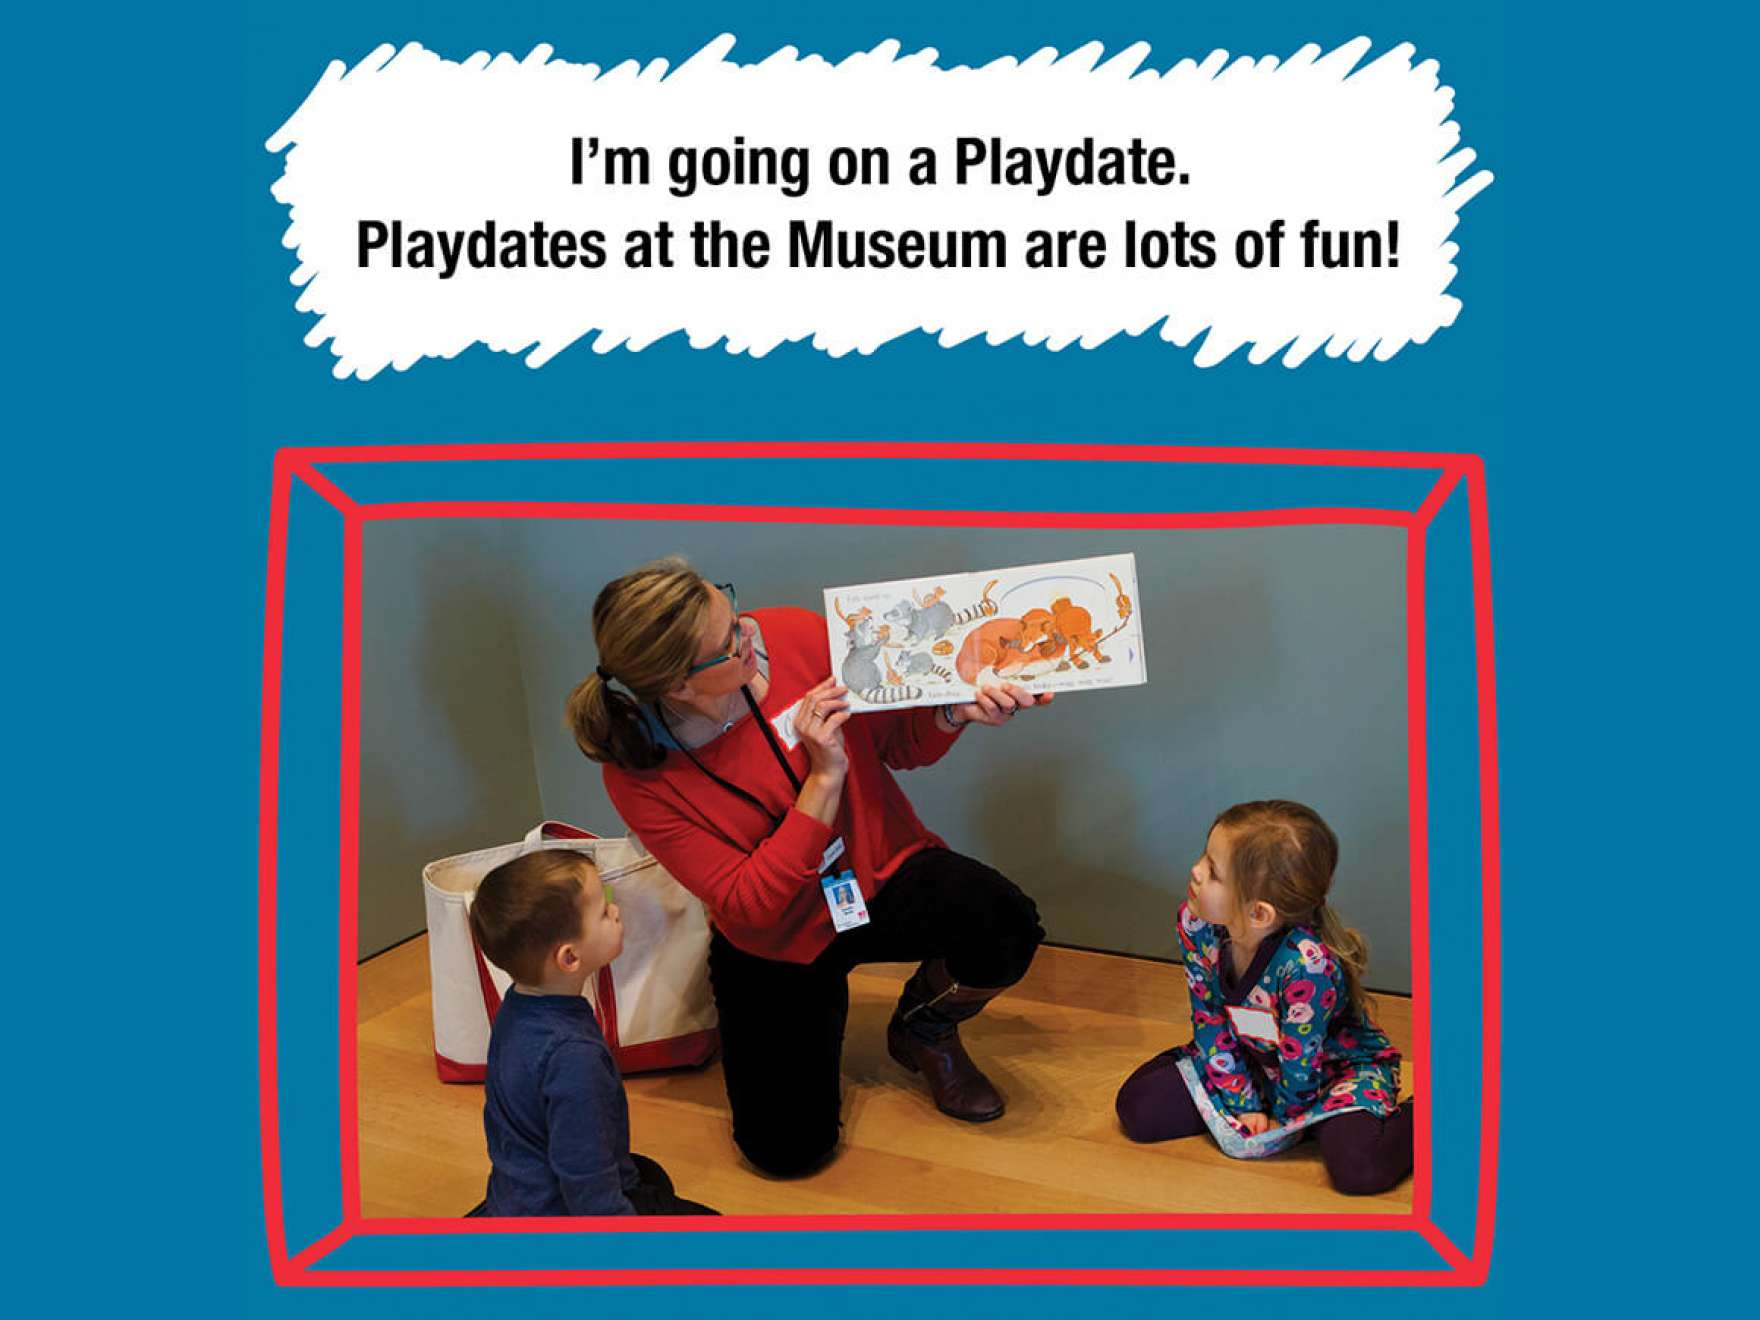 I'm going on a Playdate. Playdates at the Museum are lots of fun!